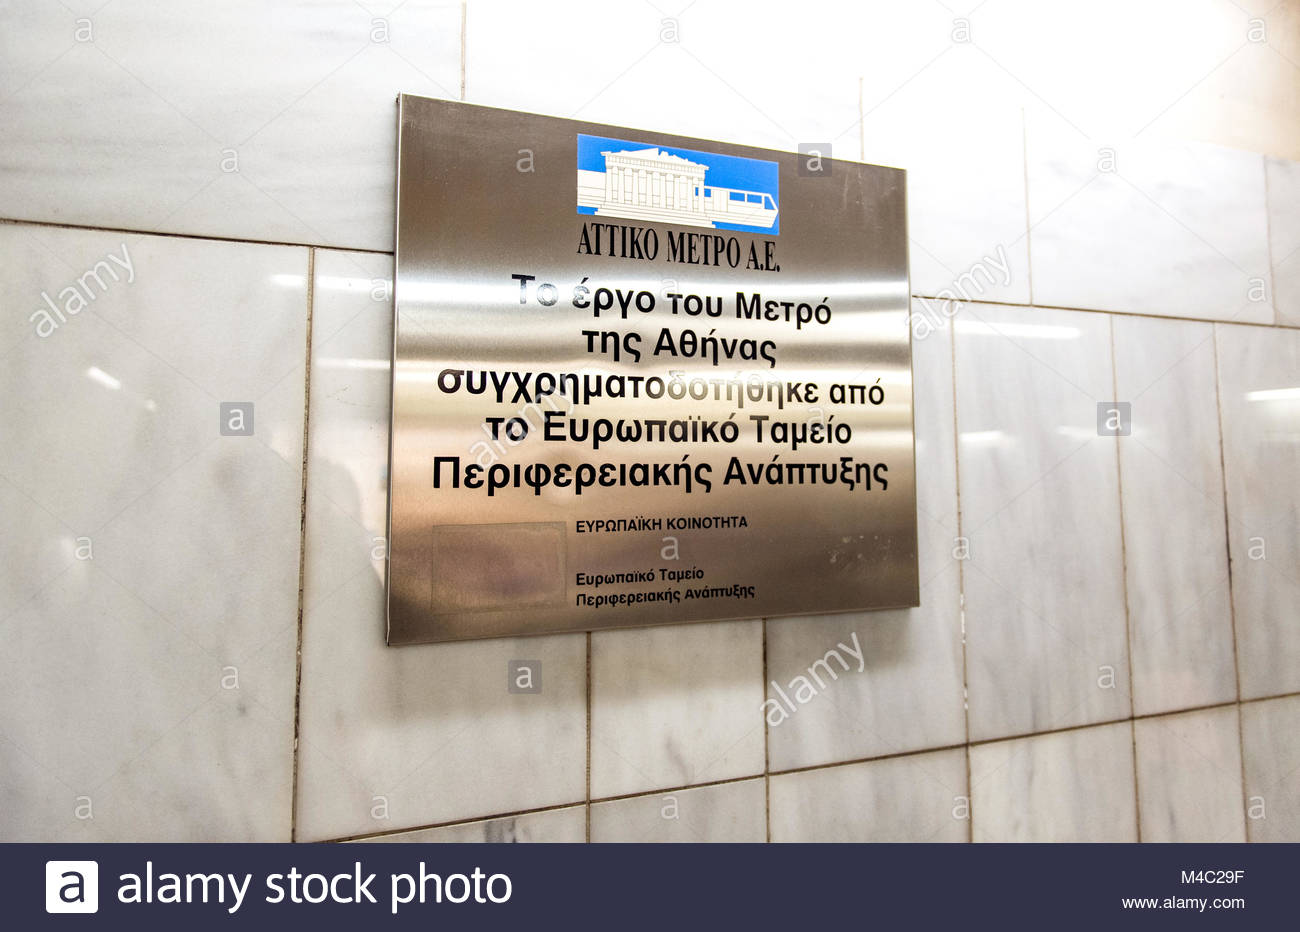 Greece and European Union colaboration plaque in Metro station - Stock Image